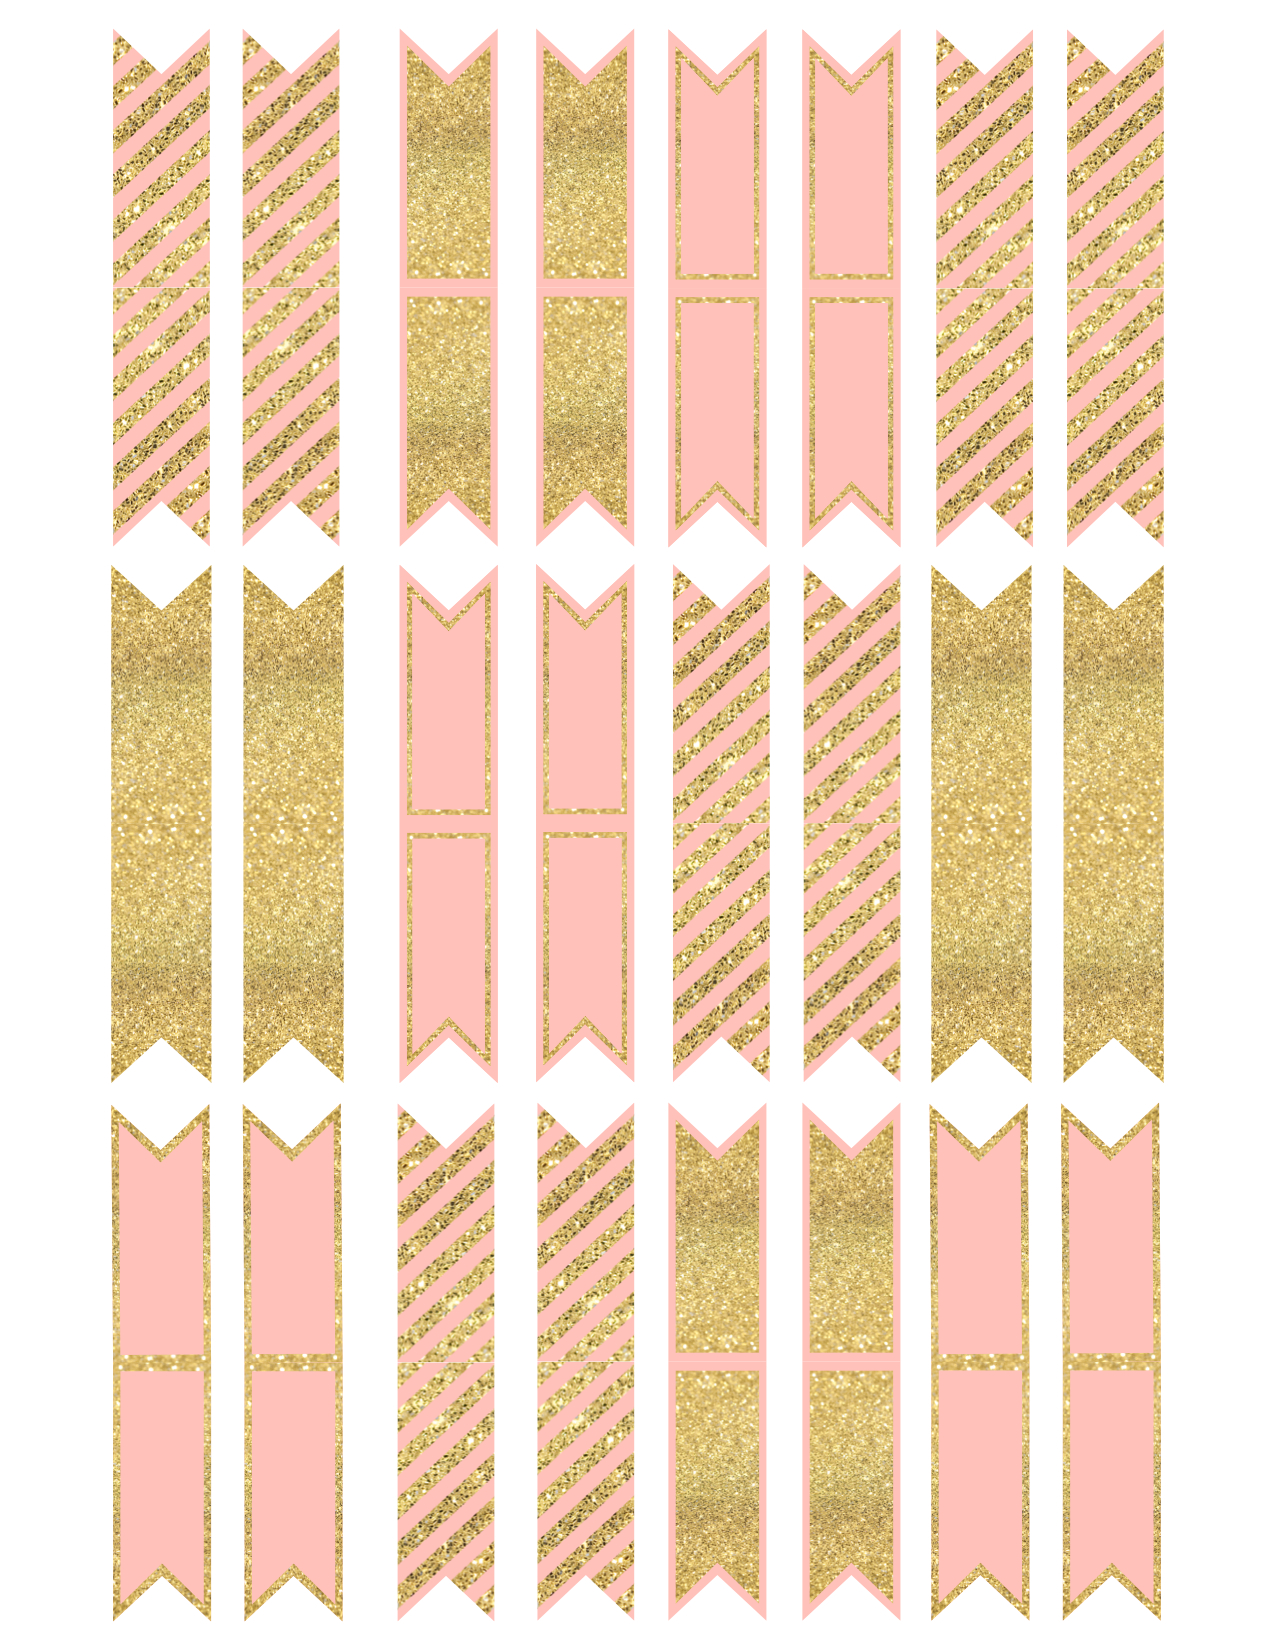 Pink And Gold Bathroom Decor: Pink And Gold Cupcake Topper Flags Or Bunting